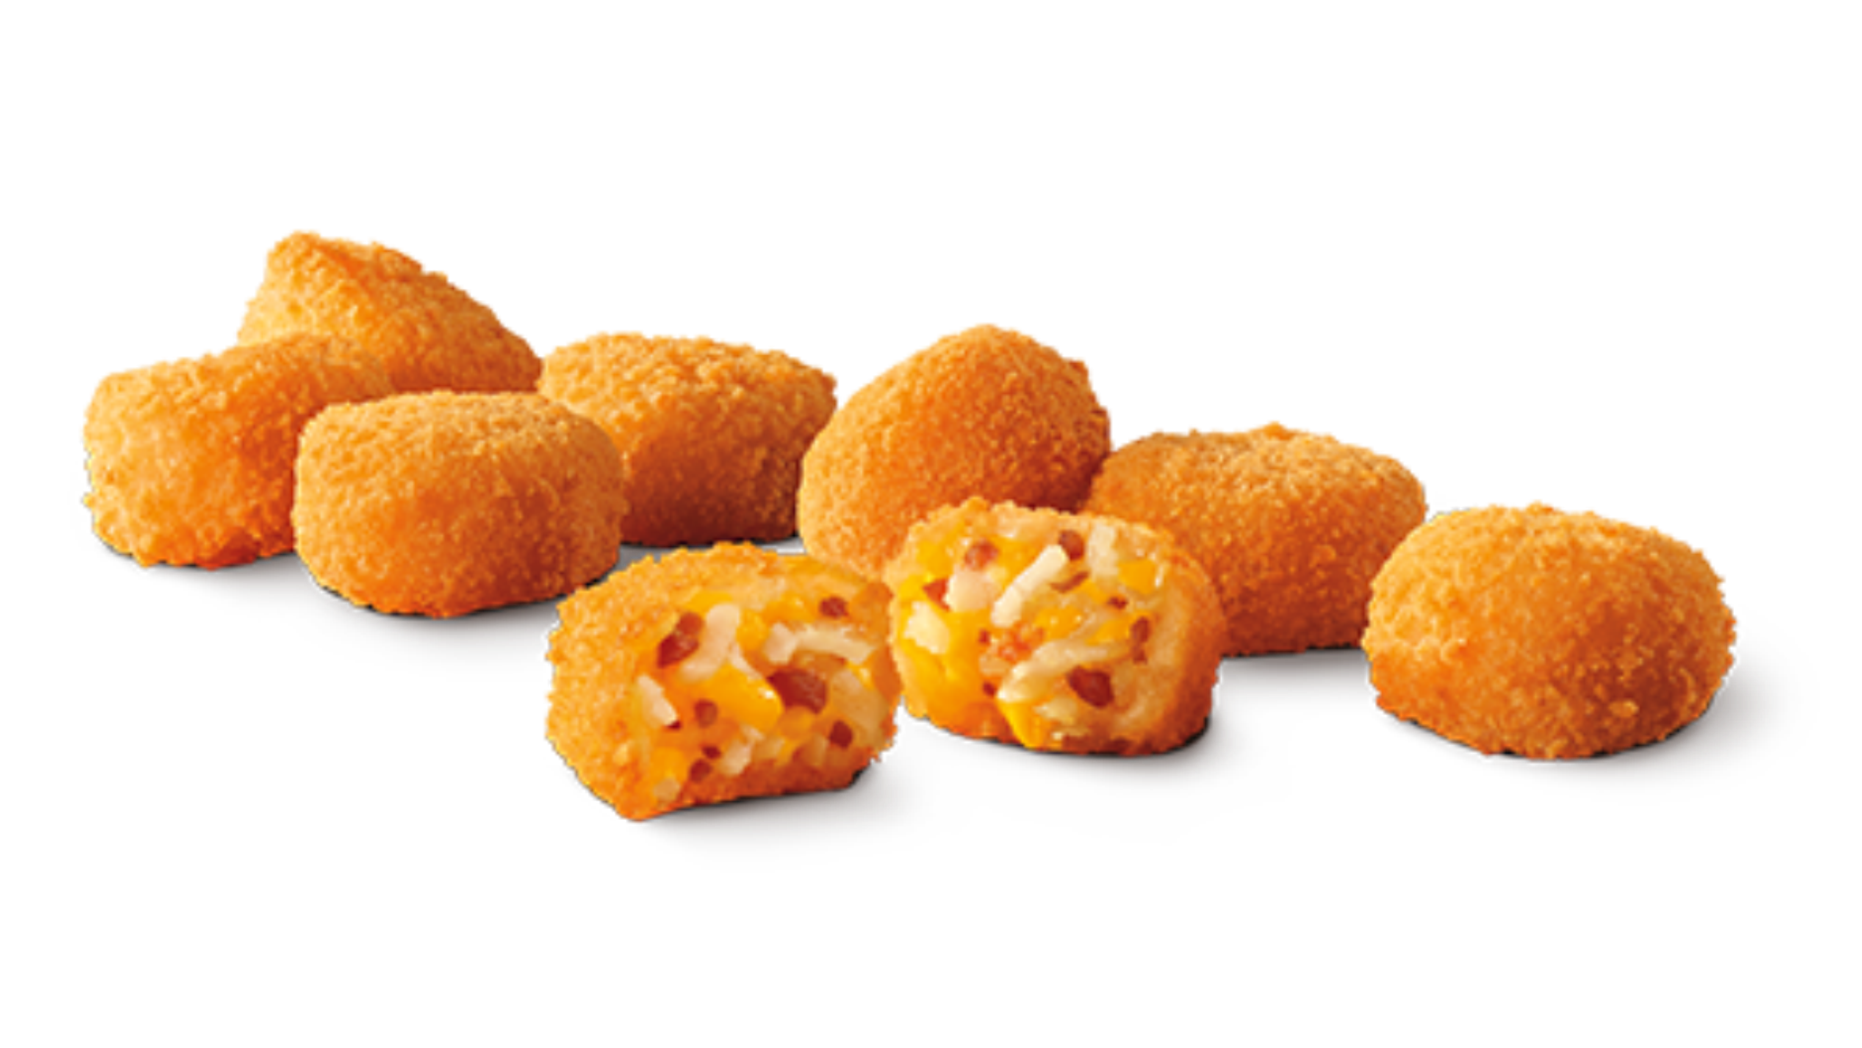 Eight tots come in an order, and if you eat them all, that's 330 calories.